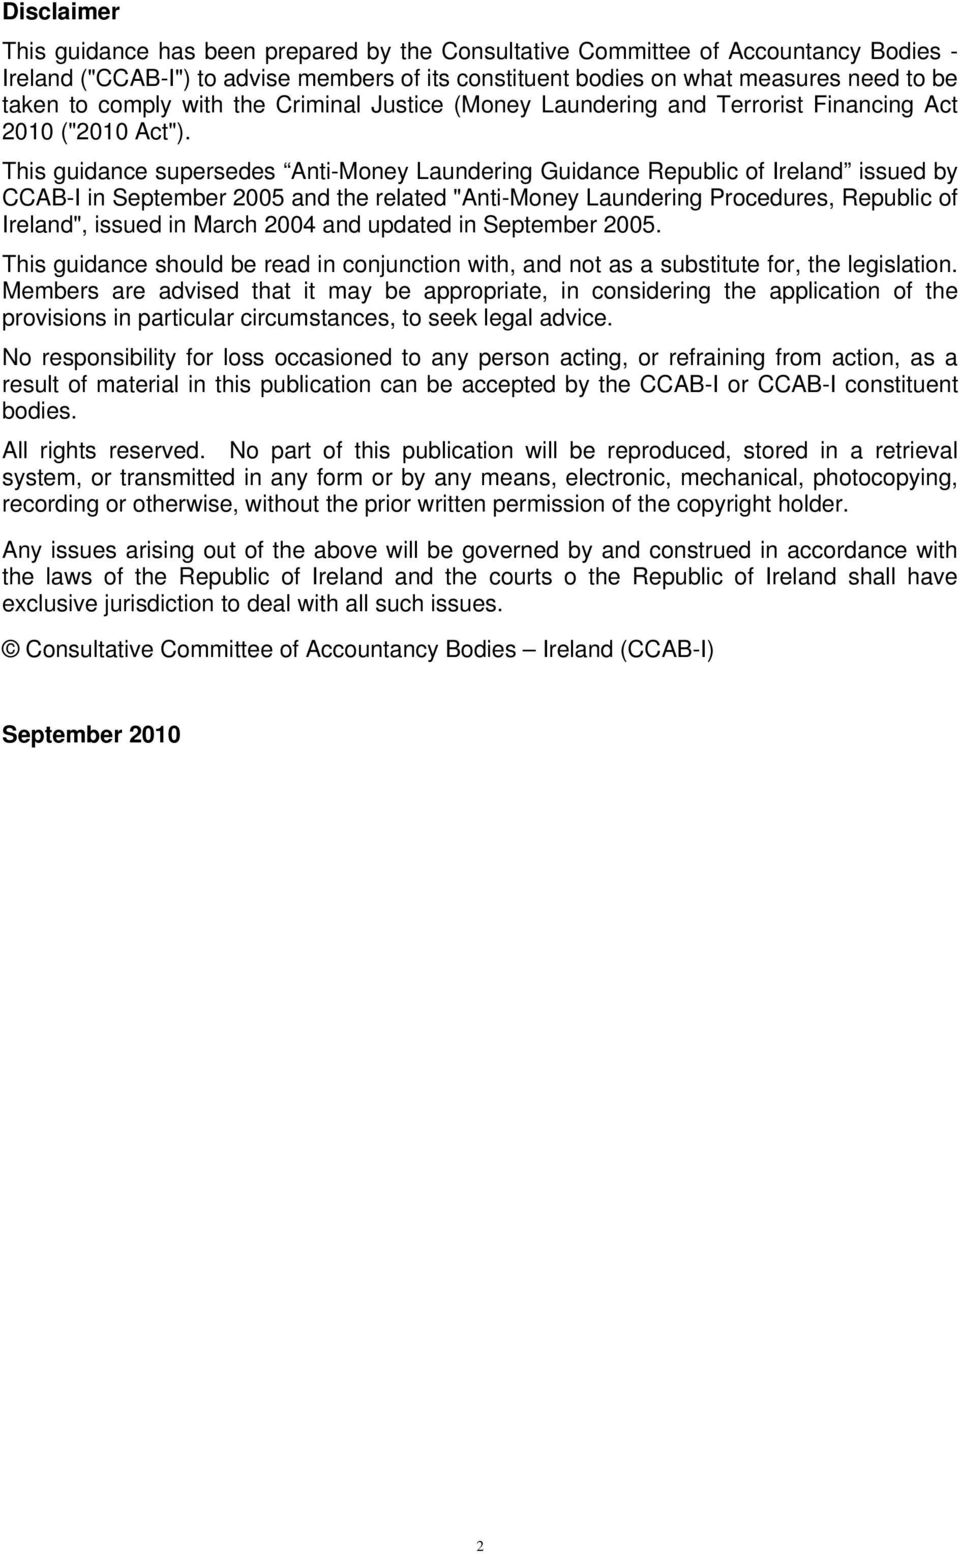 "This guidance supersedes Anti-Money Laundering Guidance Republic of Ireland issued by CCAB-I in September 2005 and the related ""Anti-Money Laundering Procedures, Republic of Ireland"", issued in March"